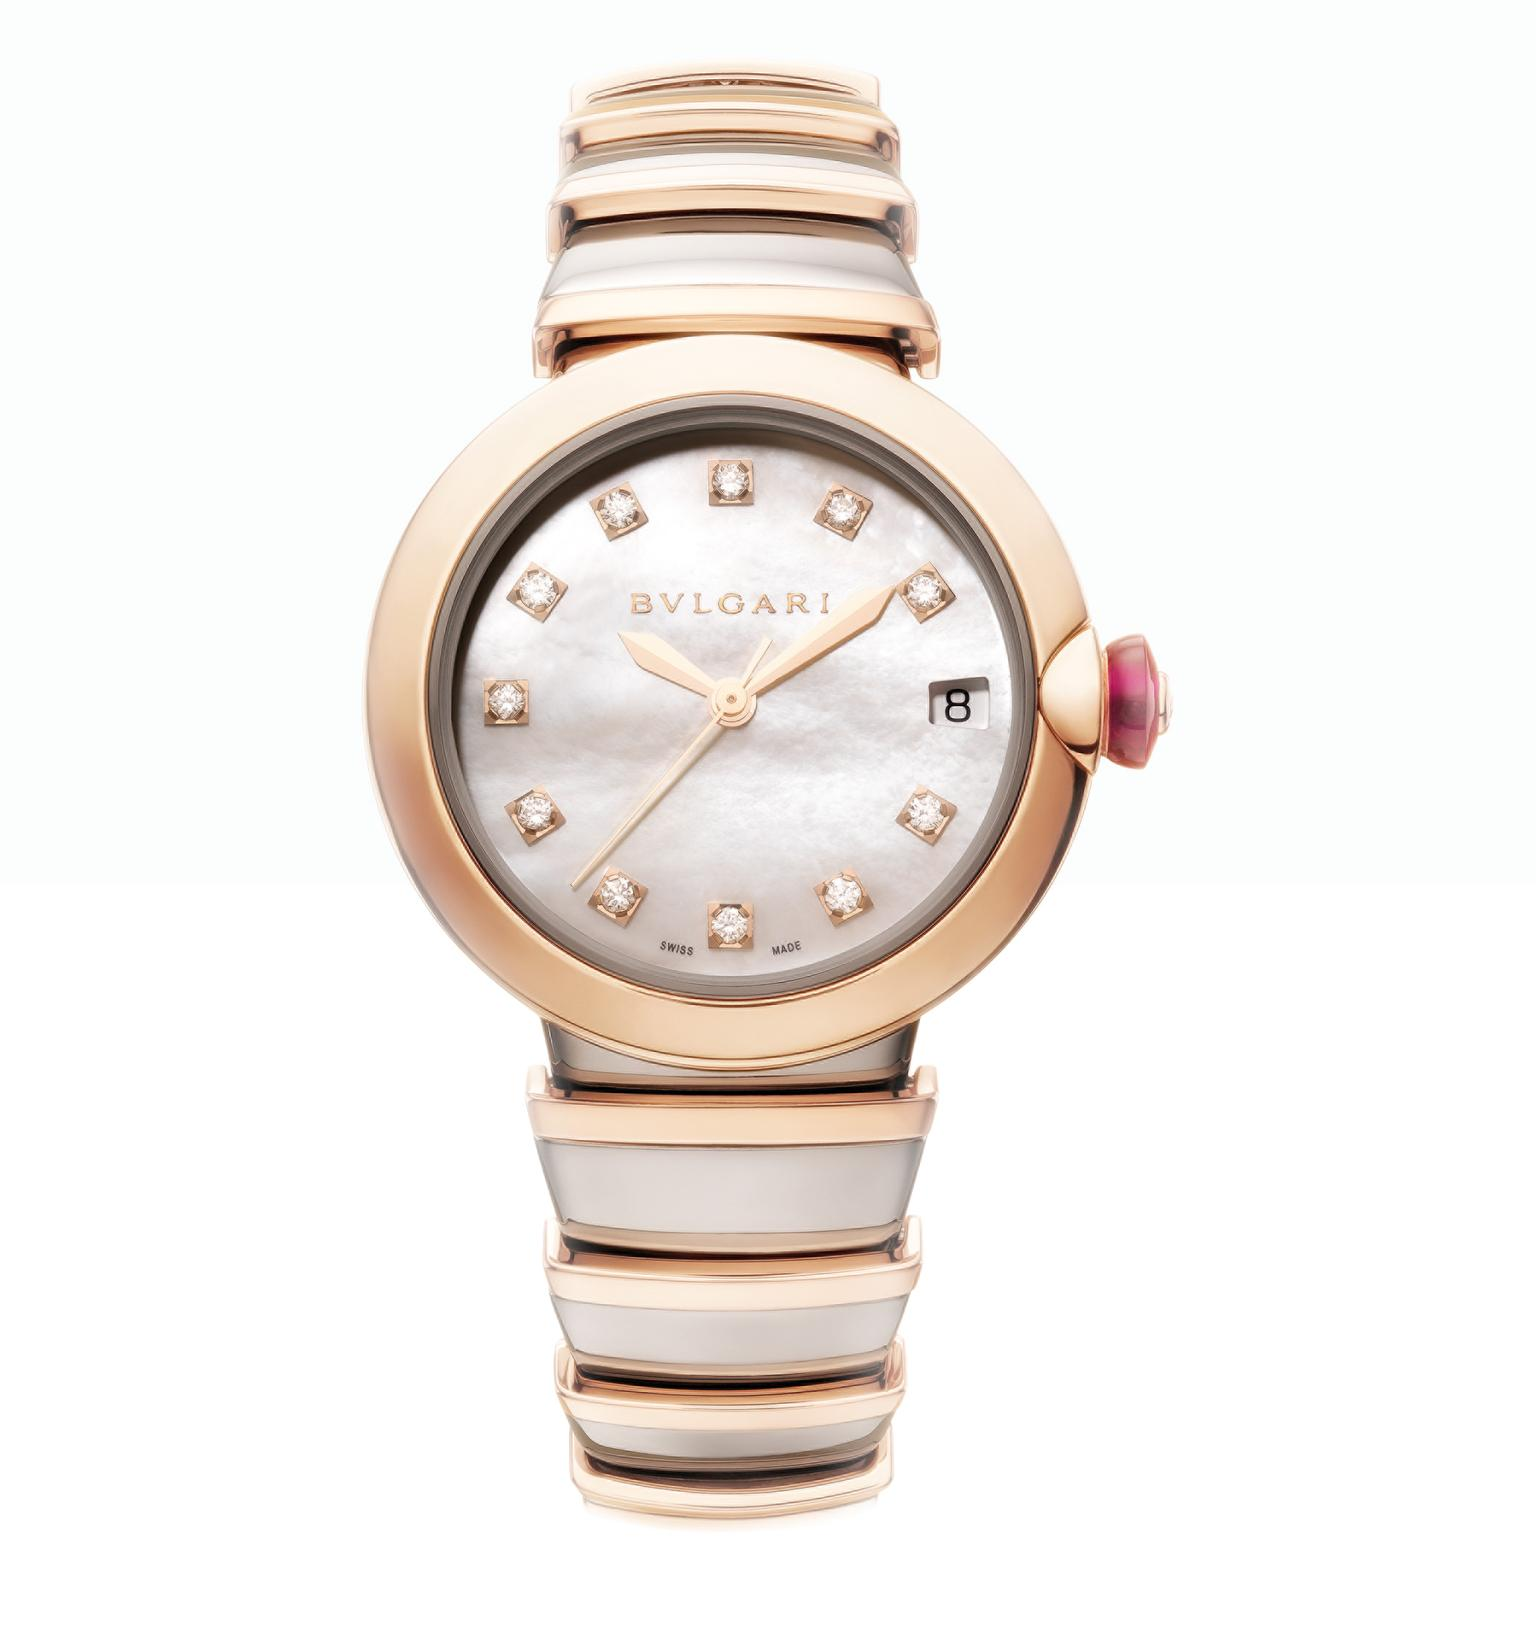 Bulgari-Lvcea-Pink-Gold-Watch_20140424_Zoom